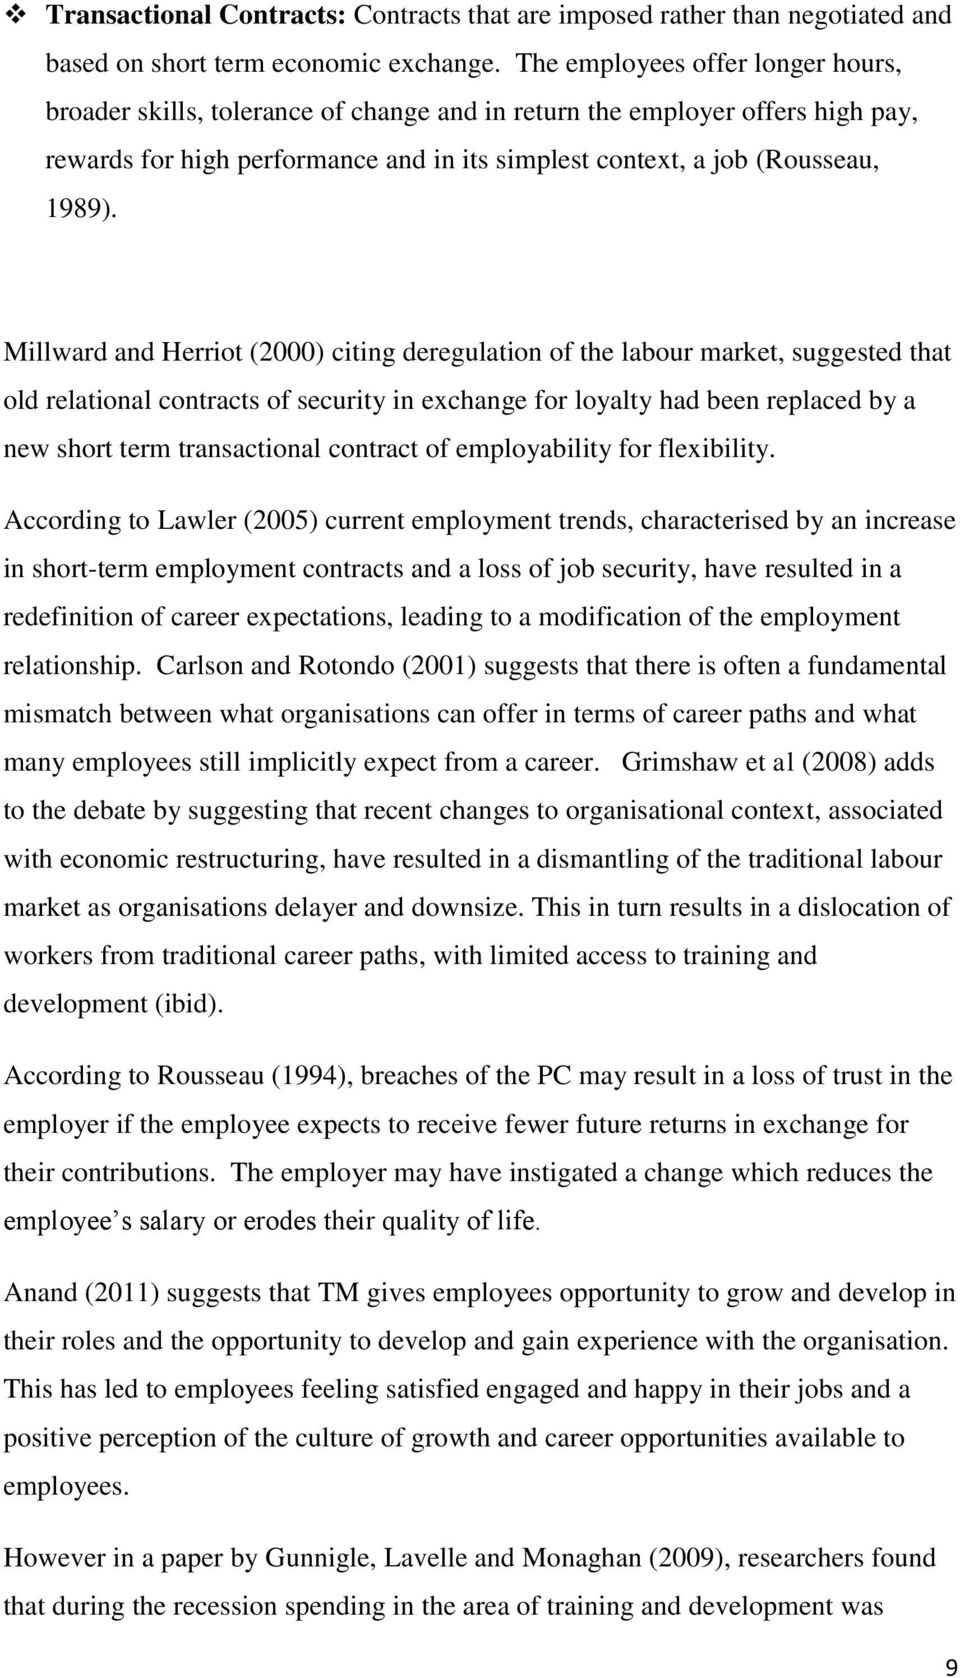 Millward and Herriot (2000) citing deregulation of the labour market, suggested that old relational contracts of security in exchange for loyalty had been replaced by a new short term transactional